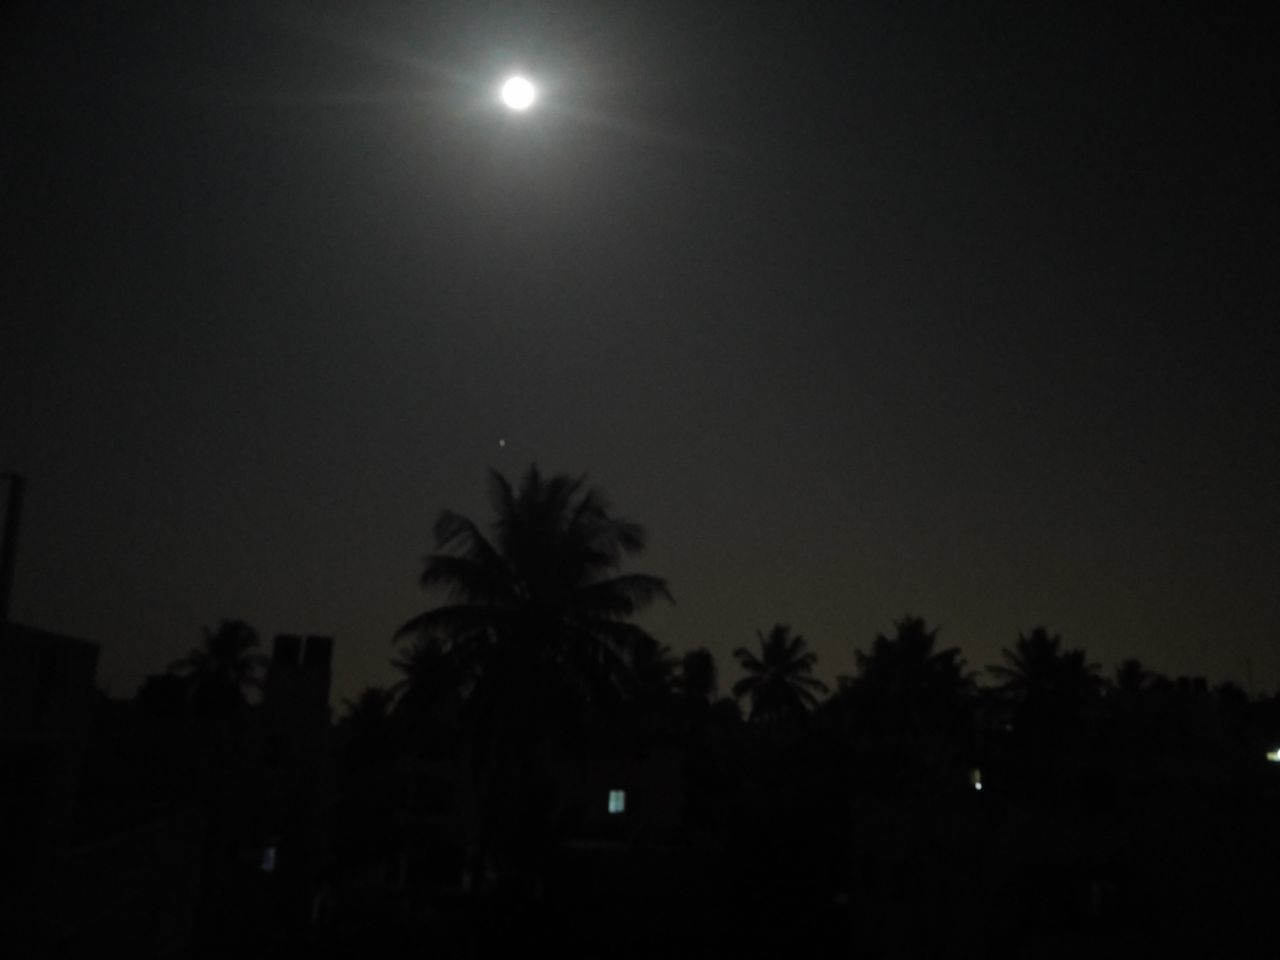 moon, tree, night, silhouette, palm tree, sky, low angle view, nature, beauty in nature, outdoors, clear sky, no people, scenics, moonlight, illuminated, astronomy